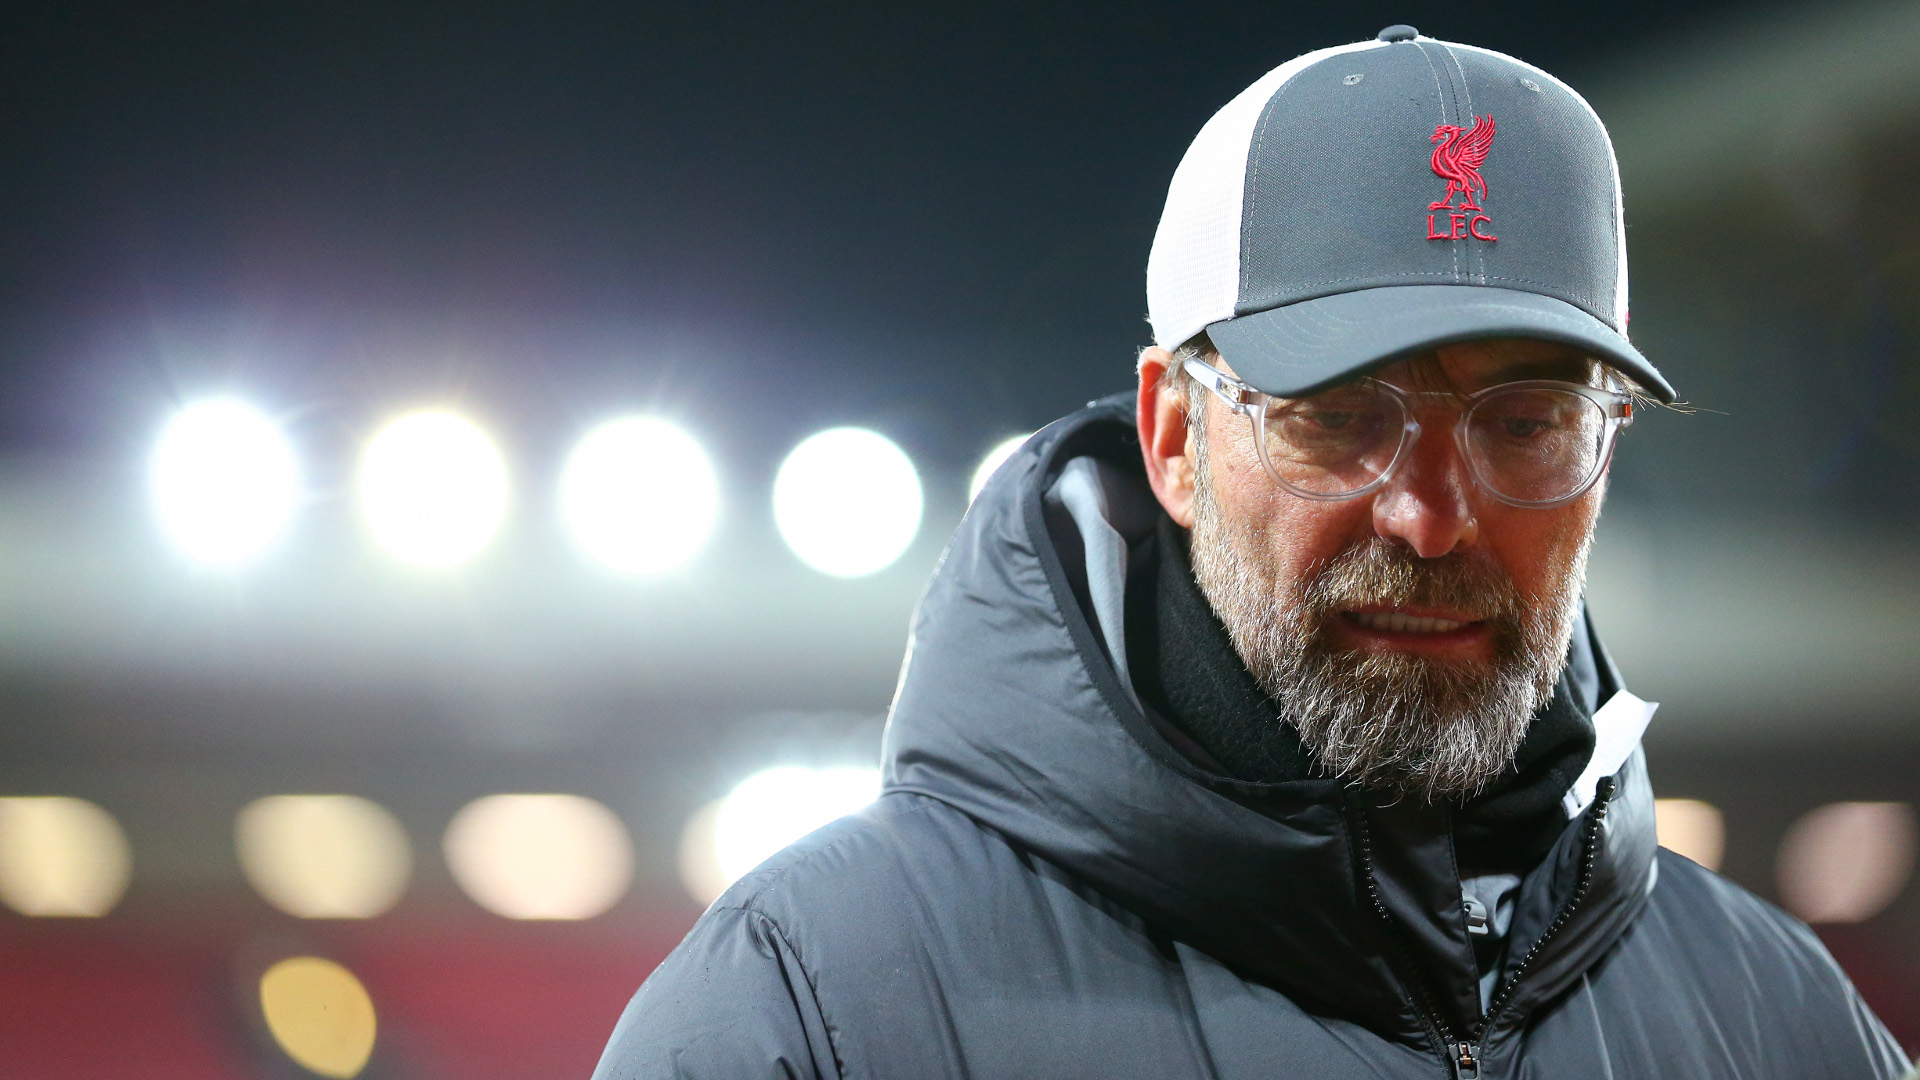 Pain of Merseyside derby defeat could stretch into summer for Europa League-bound Liverpool